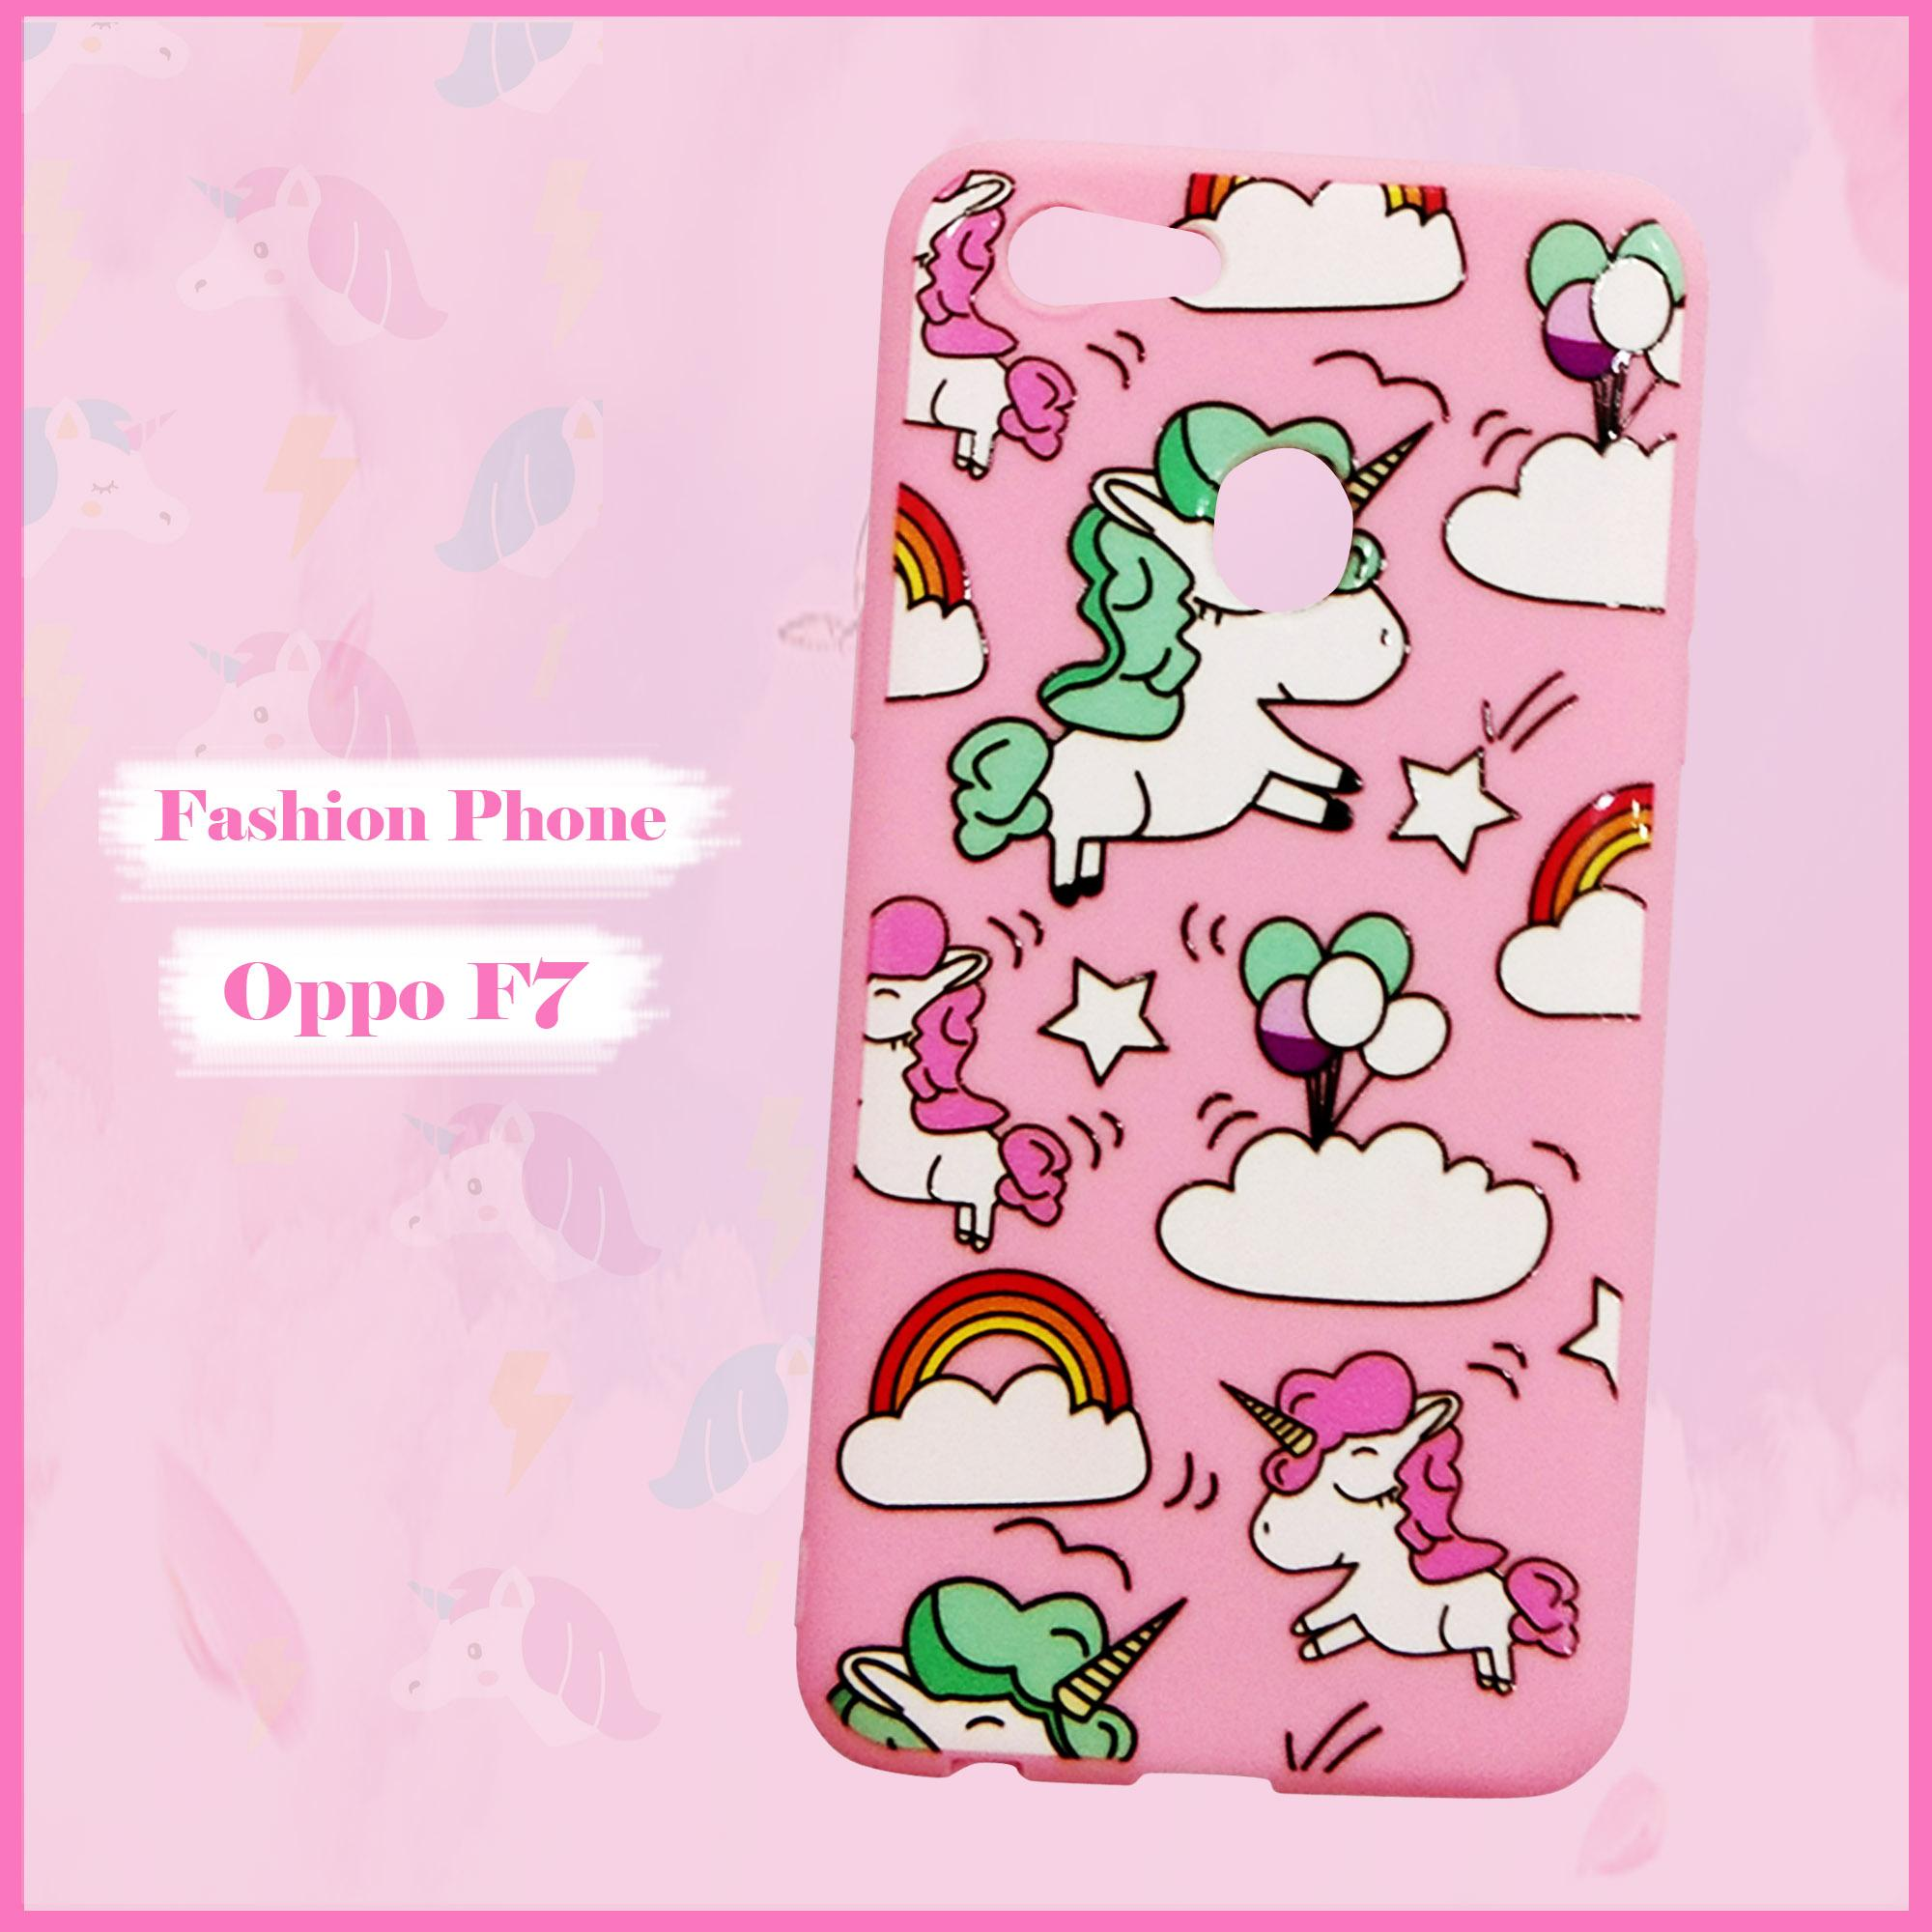 Softcase Cute Fashion Phone Case New Oppo F7